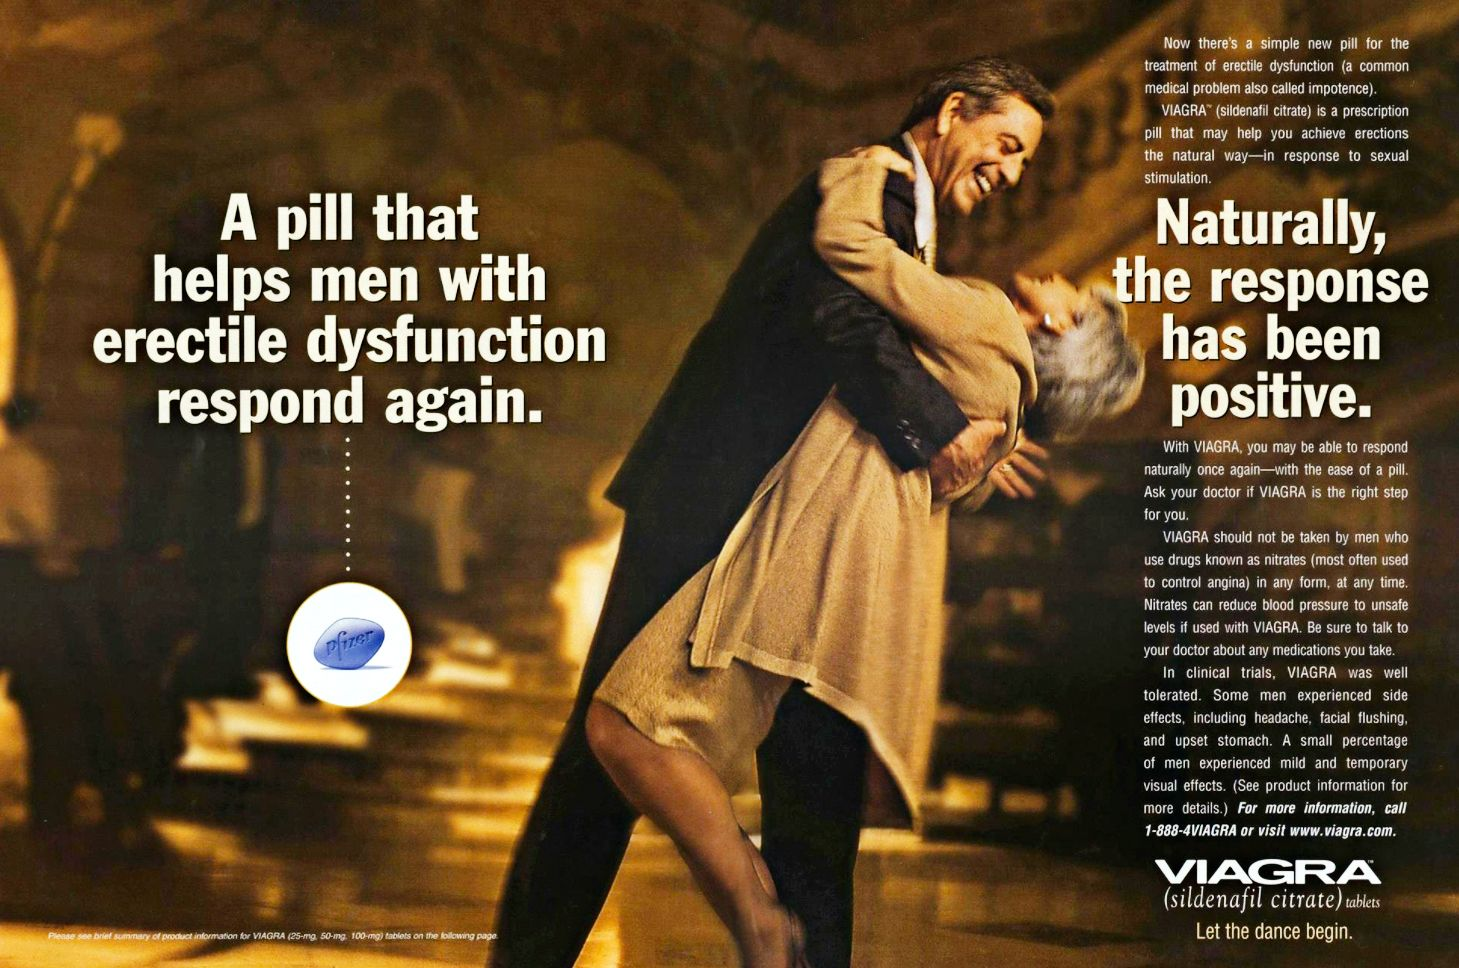 How Viagra Went from a Medical Mistake to a $3-Billion-Dollar-a-Year Industry